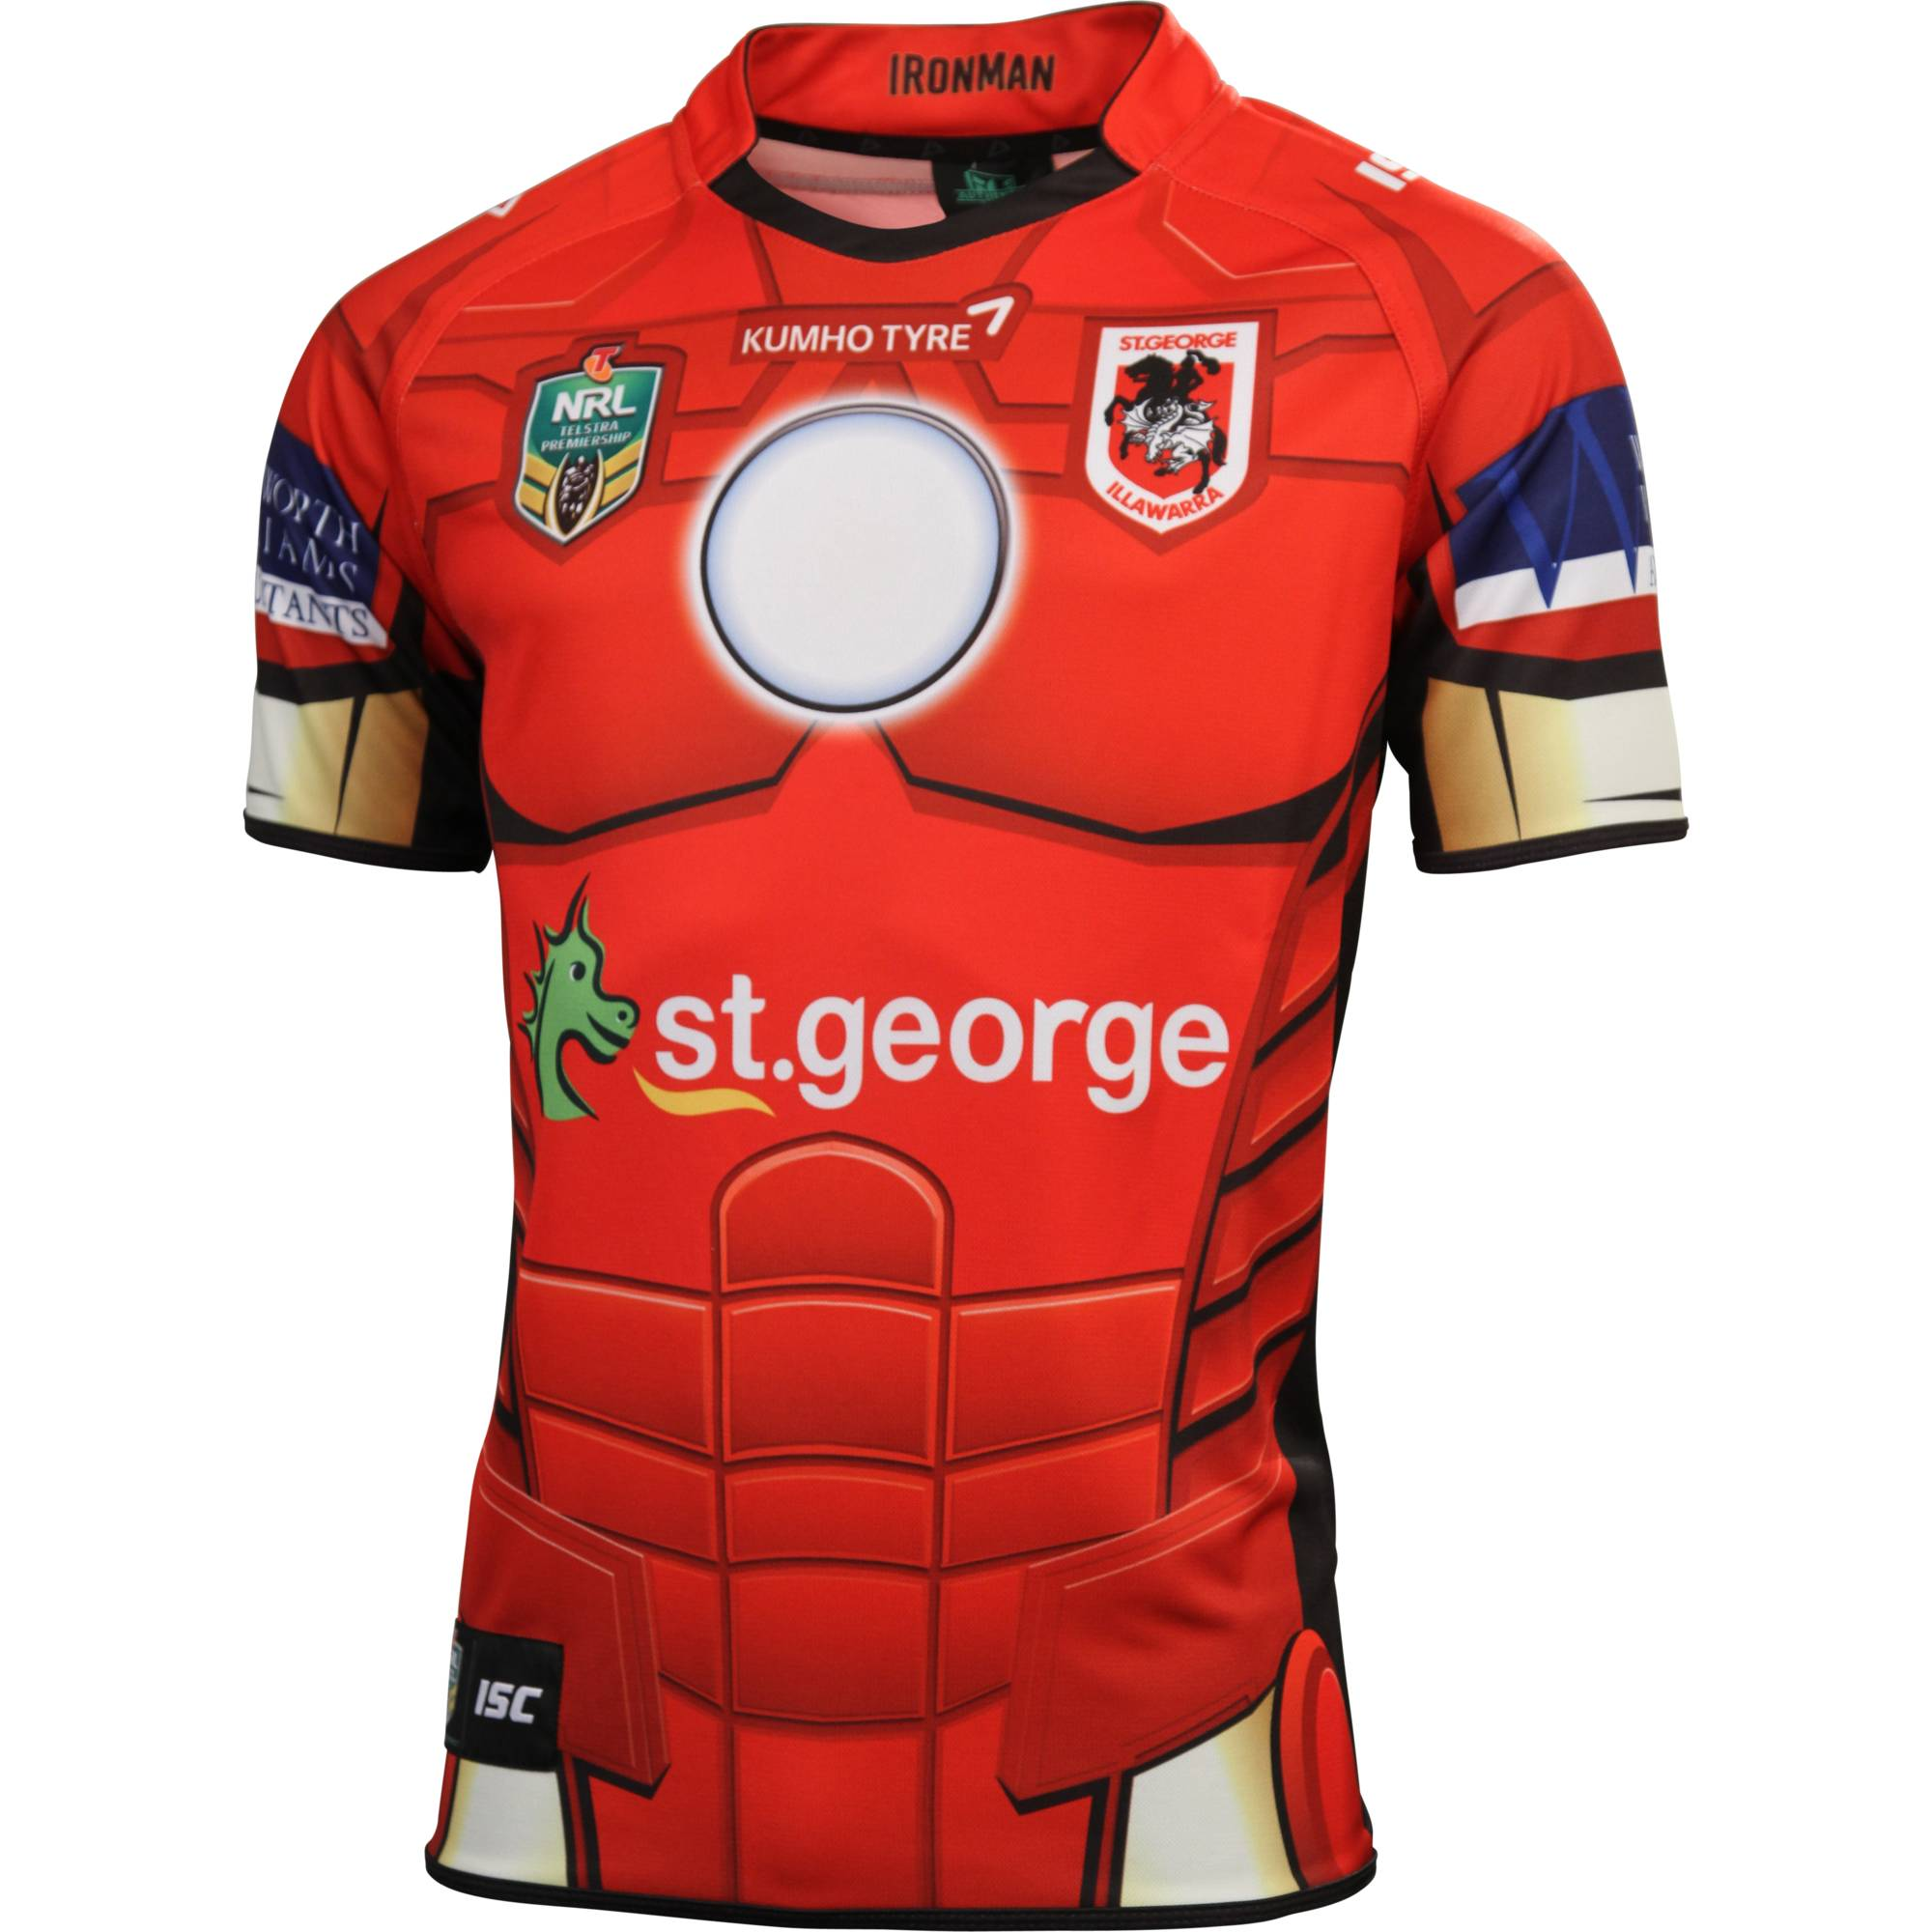 NRL 2014 ISC Marvel Heroes Shirts Rugby Shirt Watch